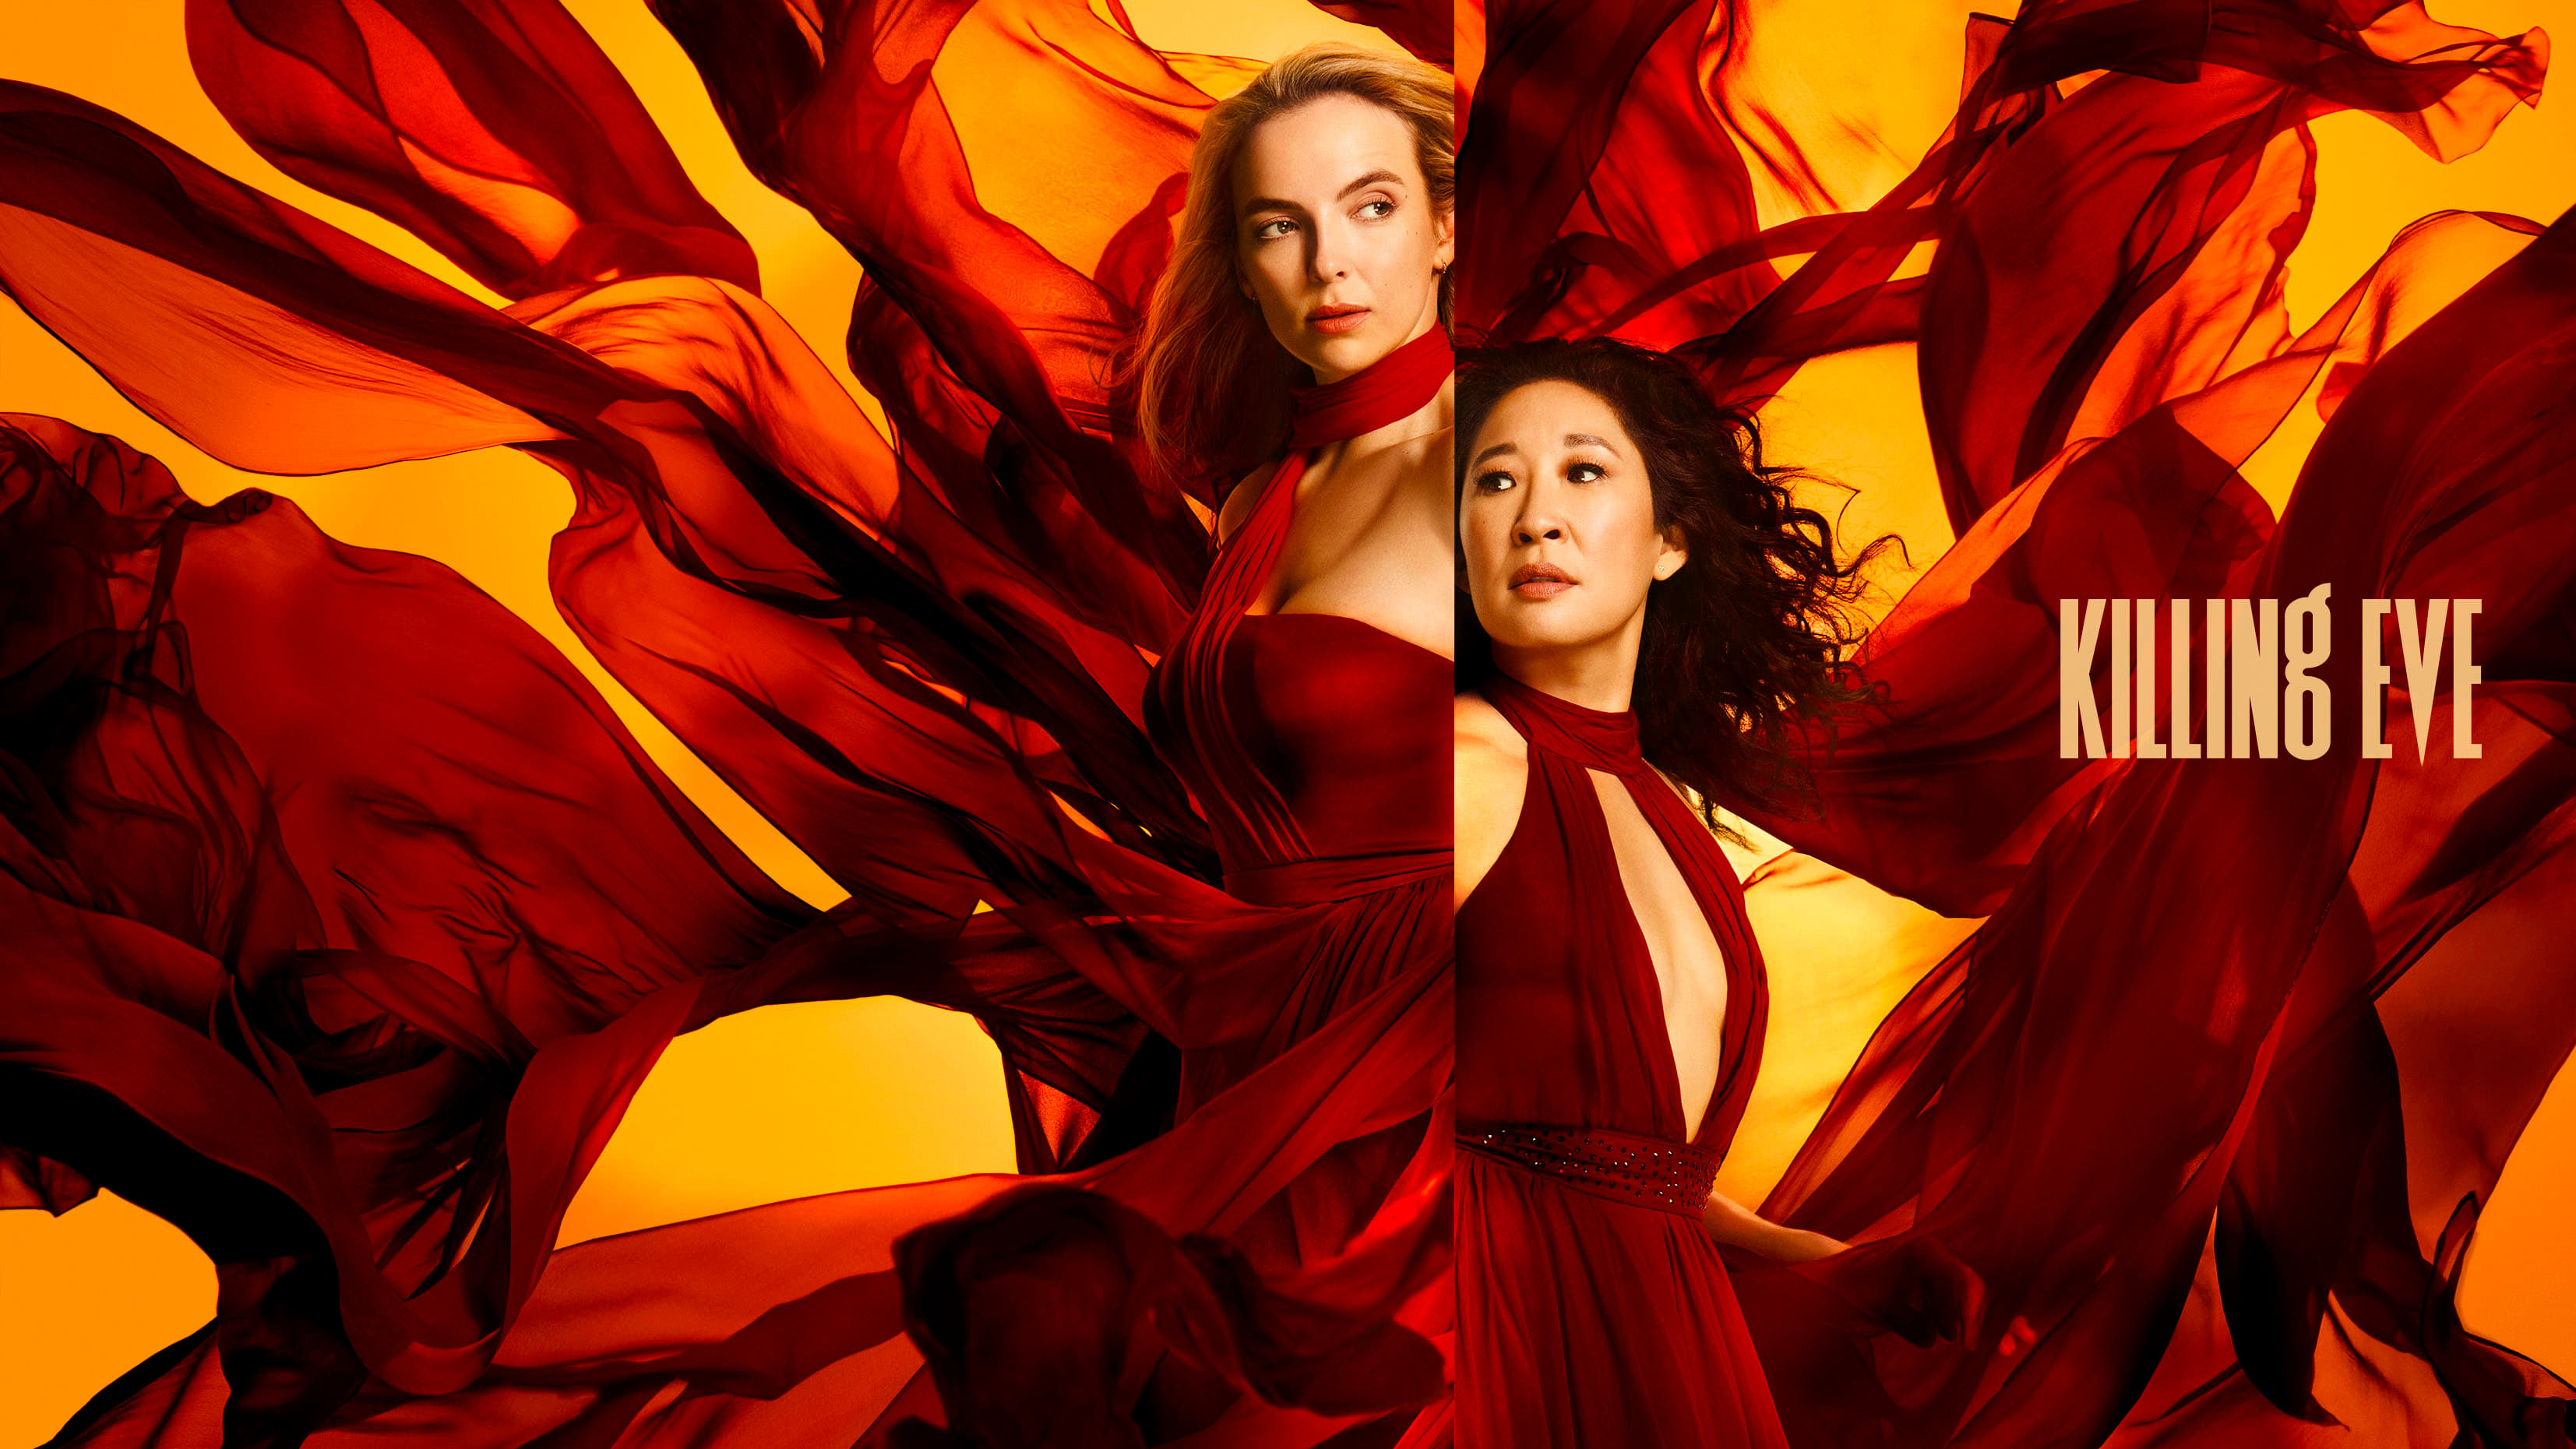 Fourth season to be the final one for Killing Eve